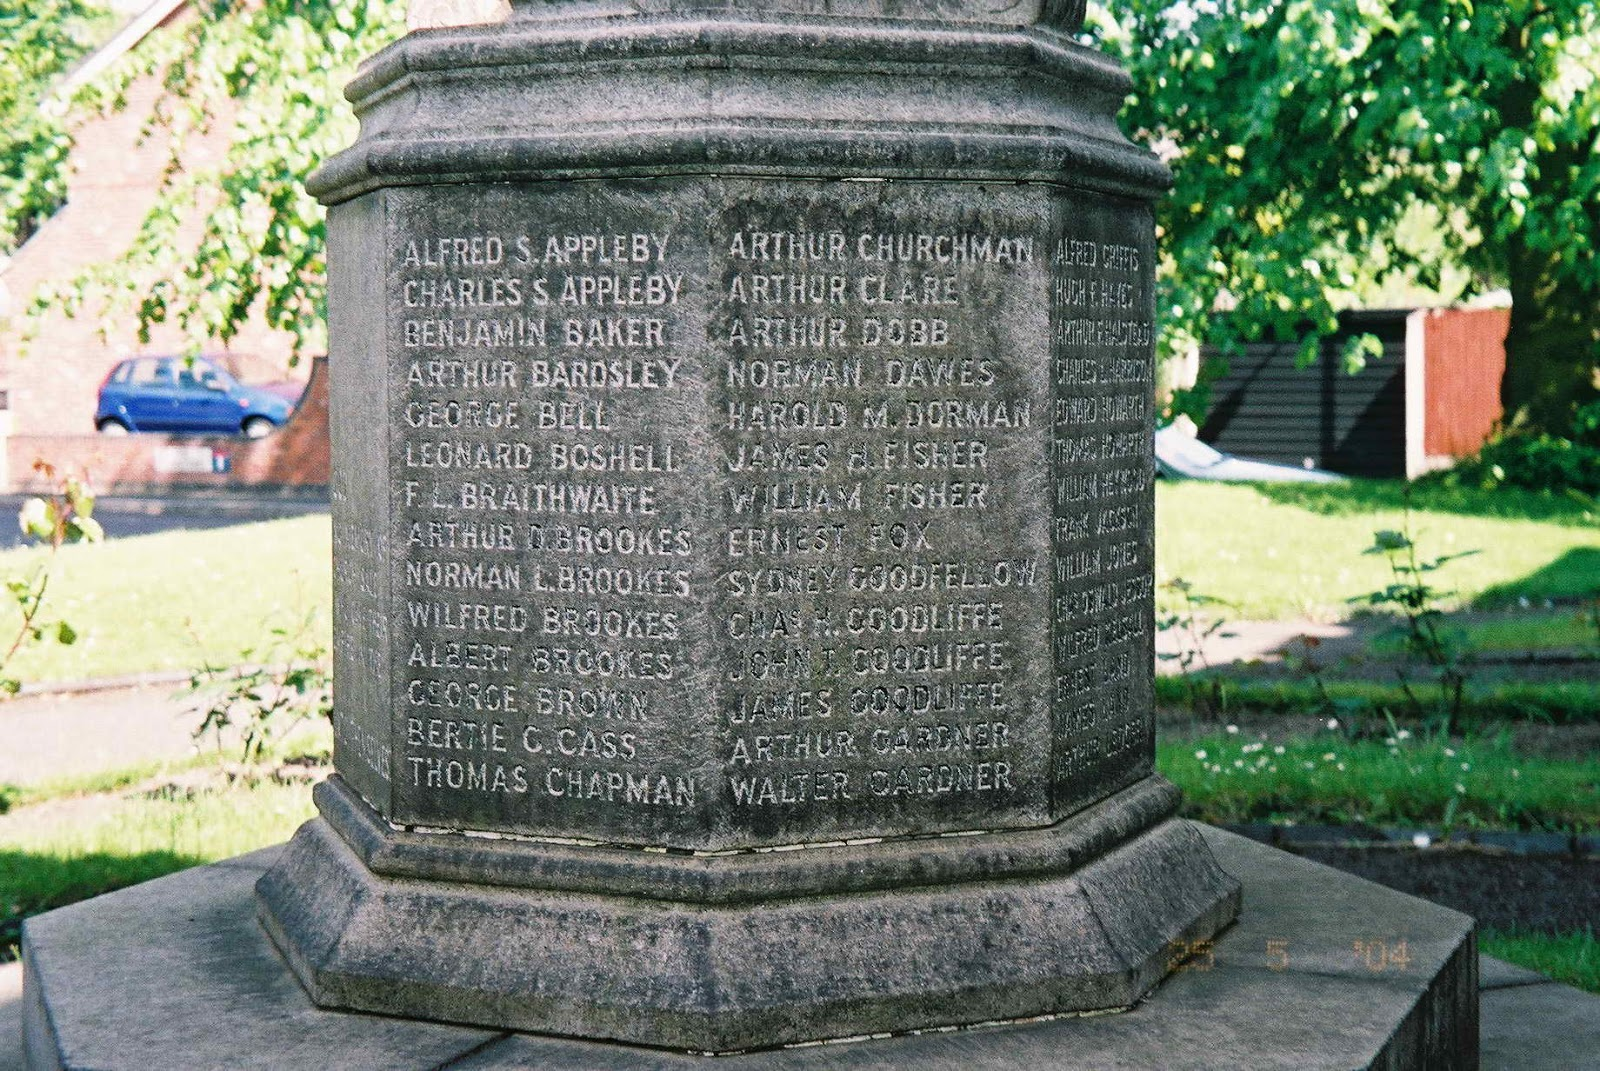 Inscription– A detailed view of the memorial at St. Anne's Church in Sale, Cheshire, United Kingdom showing Walter Gardner's name inscribed at bottom right.